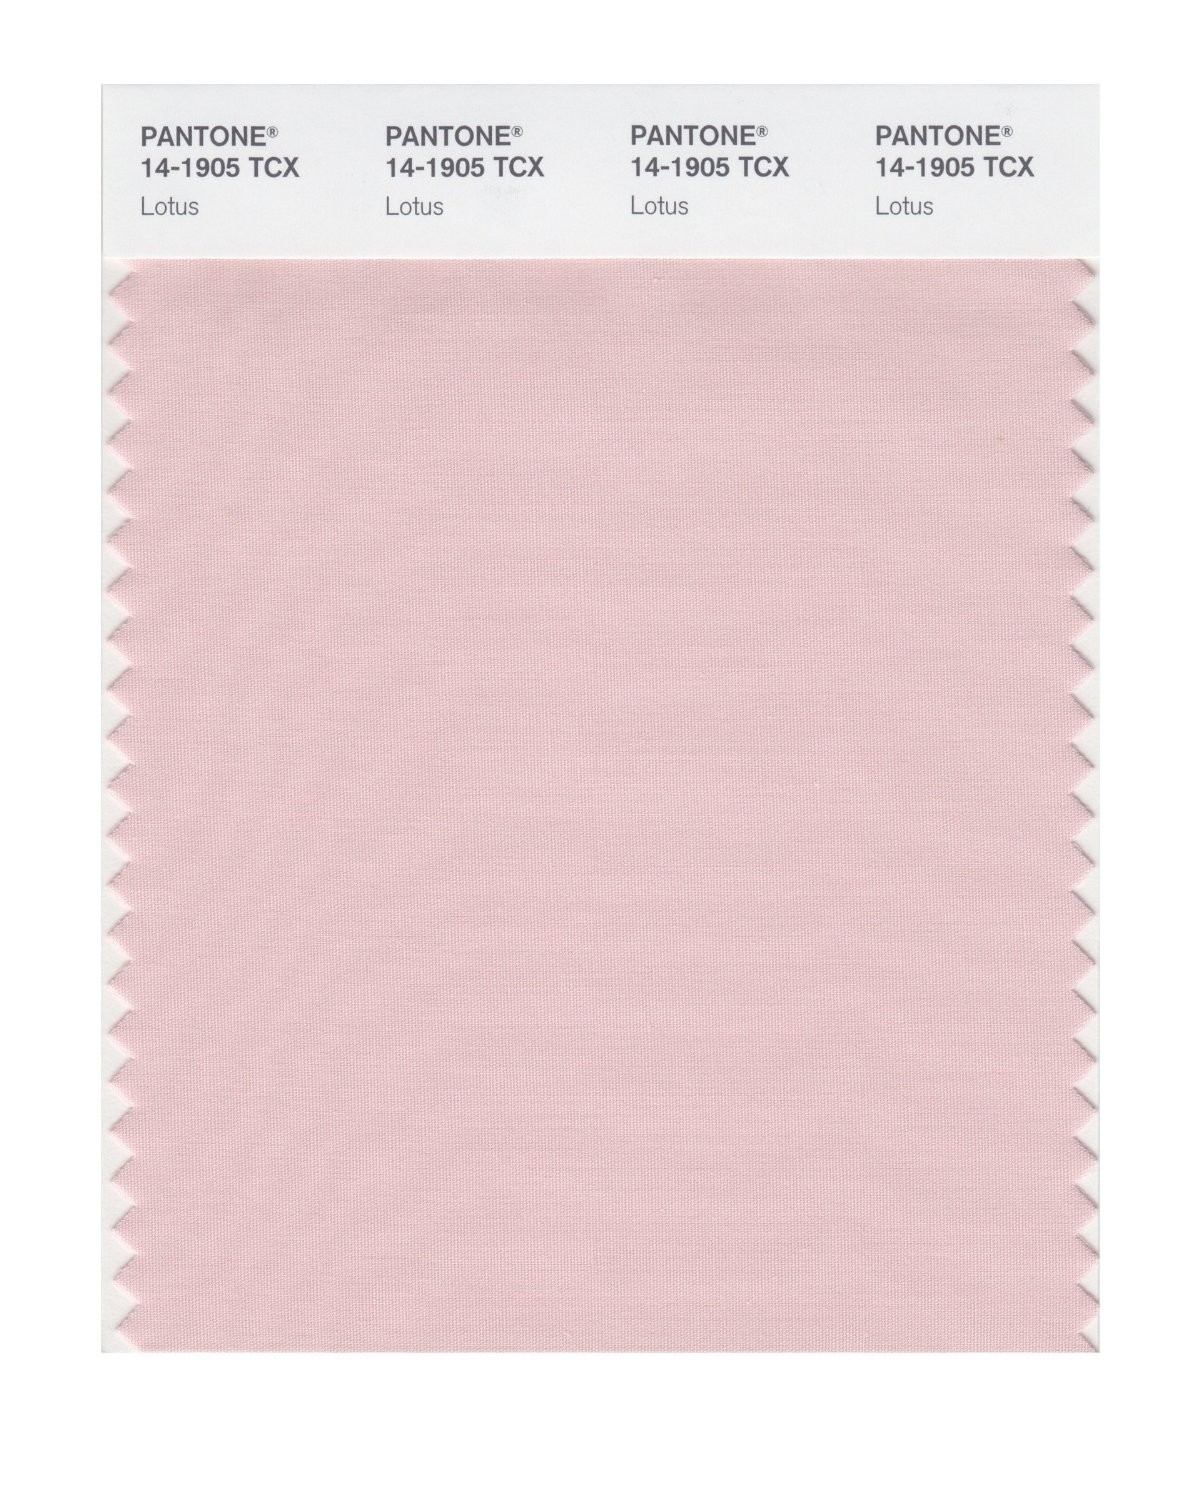 Pantone 14-1905 TCX Swatch Card Lotus